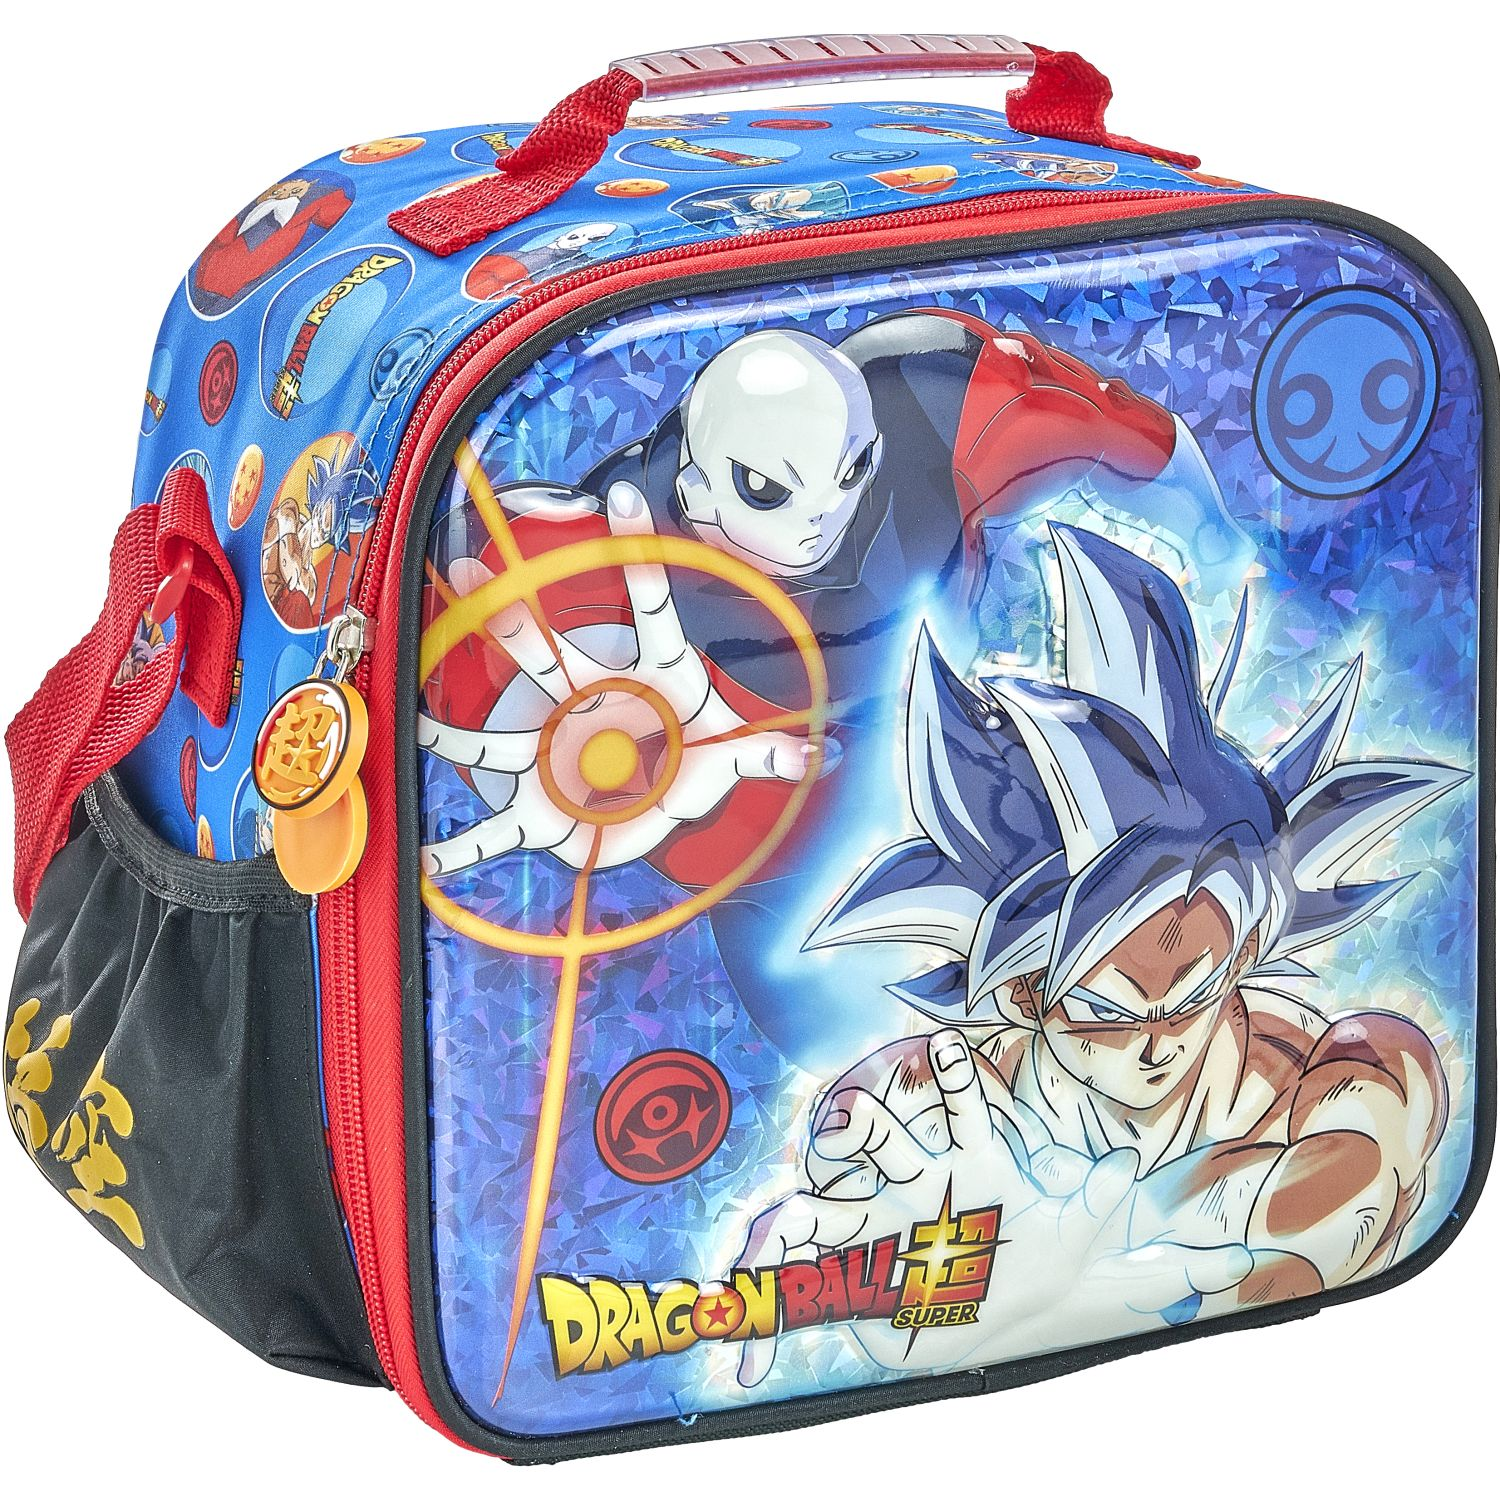 DRAGON BALL 20 Scool Dragon Ball Lonch Eva 6d New Azul / rojo Loncheras